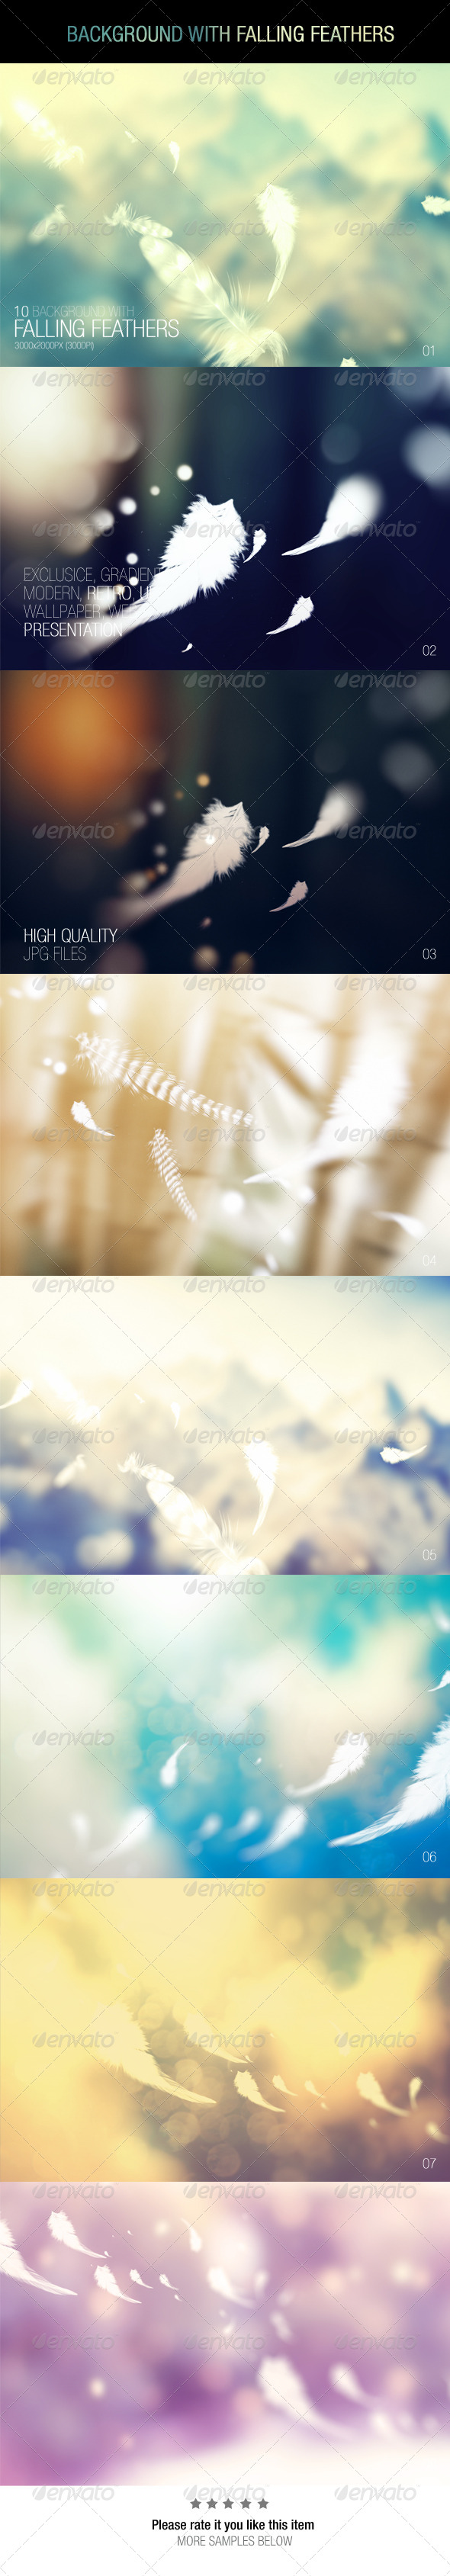 GraphicRiver Background With Falling Feathers 7505427